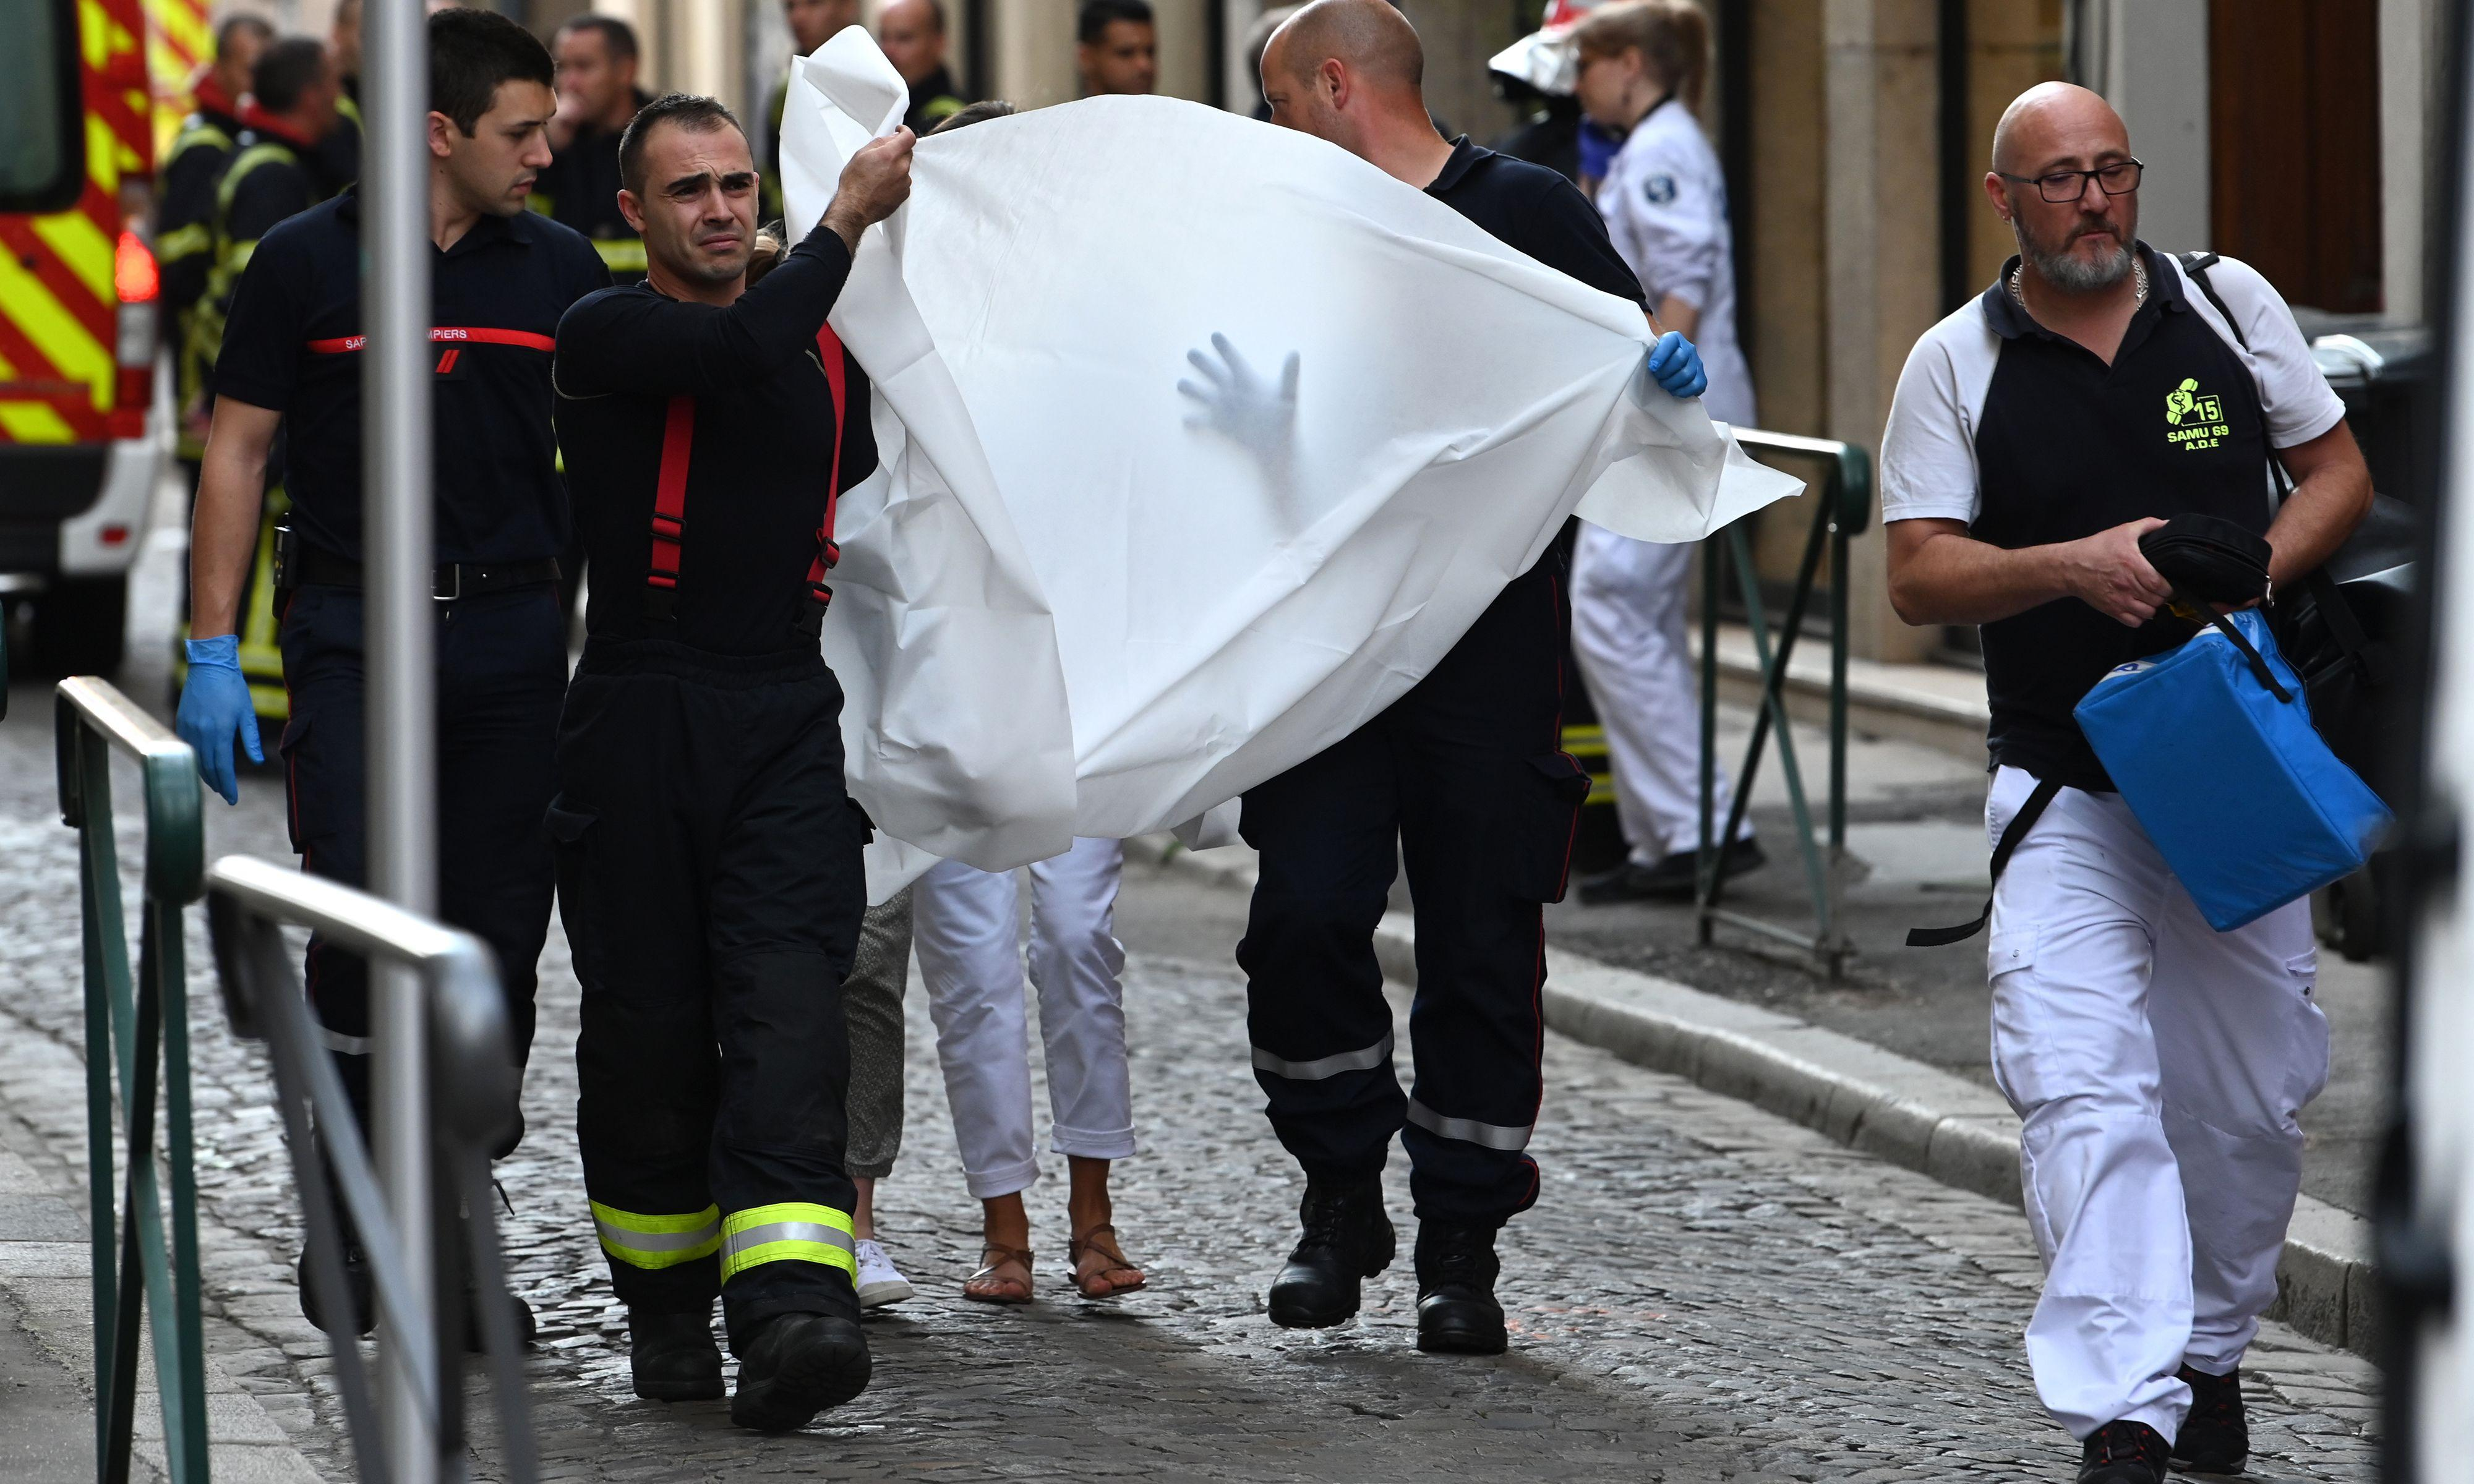 More than a dozen injured in suspected package bomb blast in France